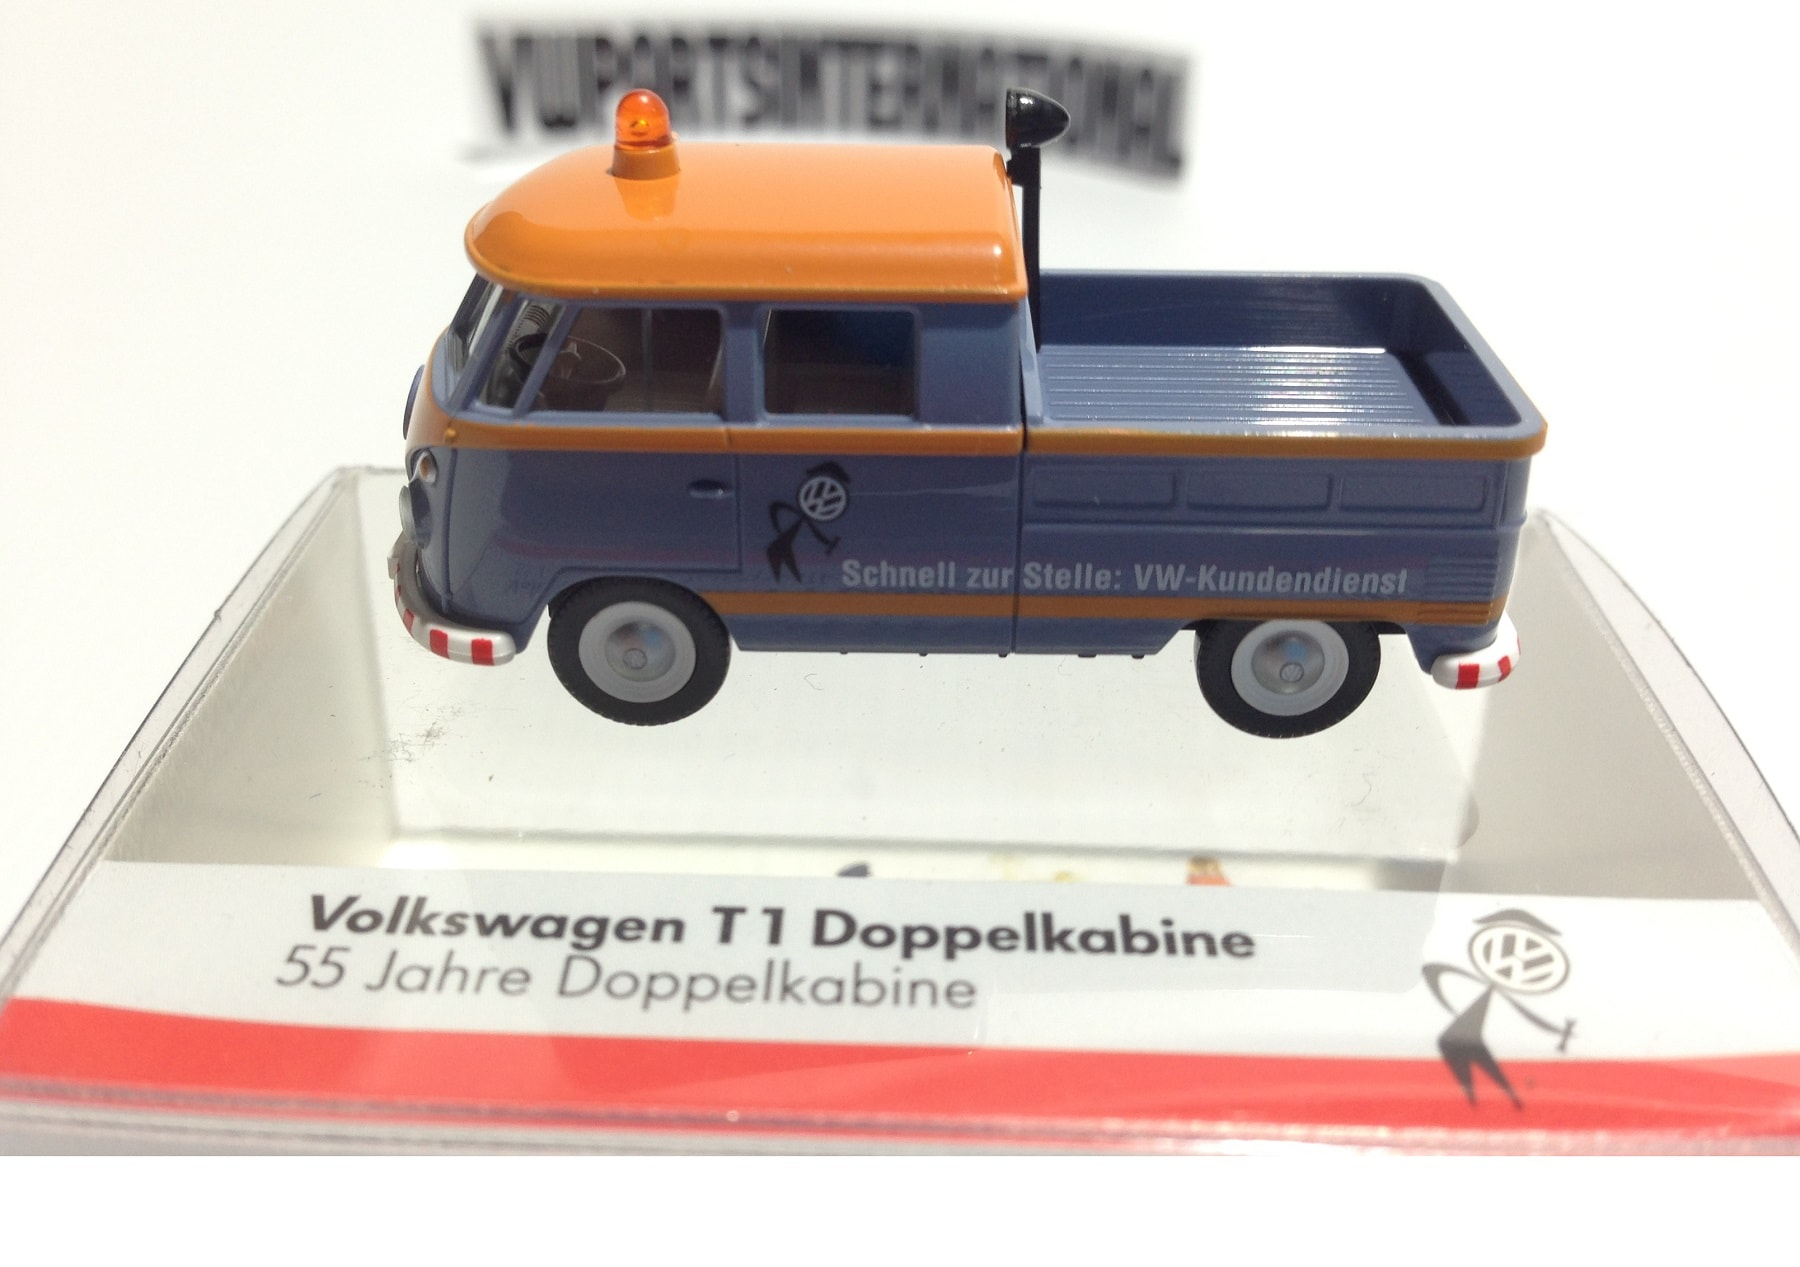 Volkswagen Splitty Split Screen Double Cab Pick Up T1 187 Scale Model Toy Christmas Gift Present Xmas Stocking Filler